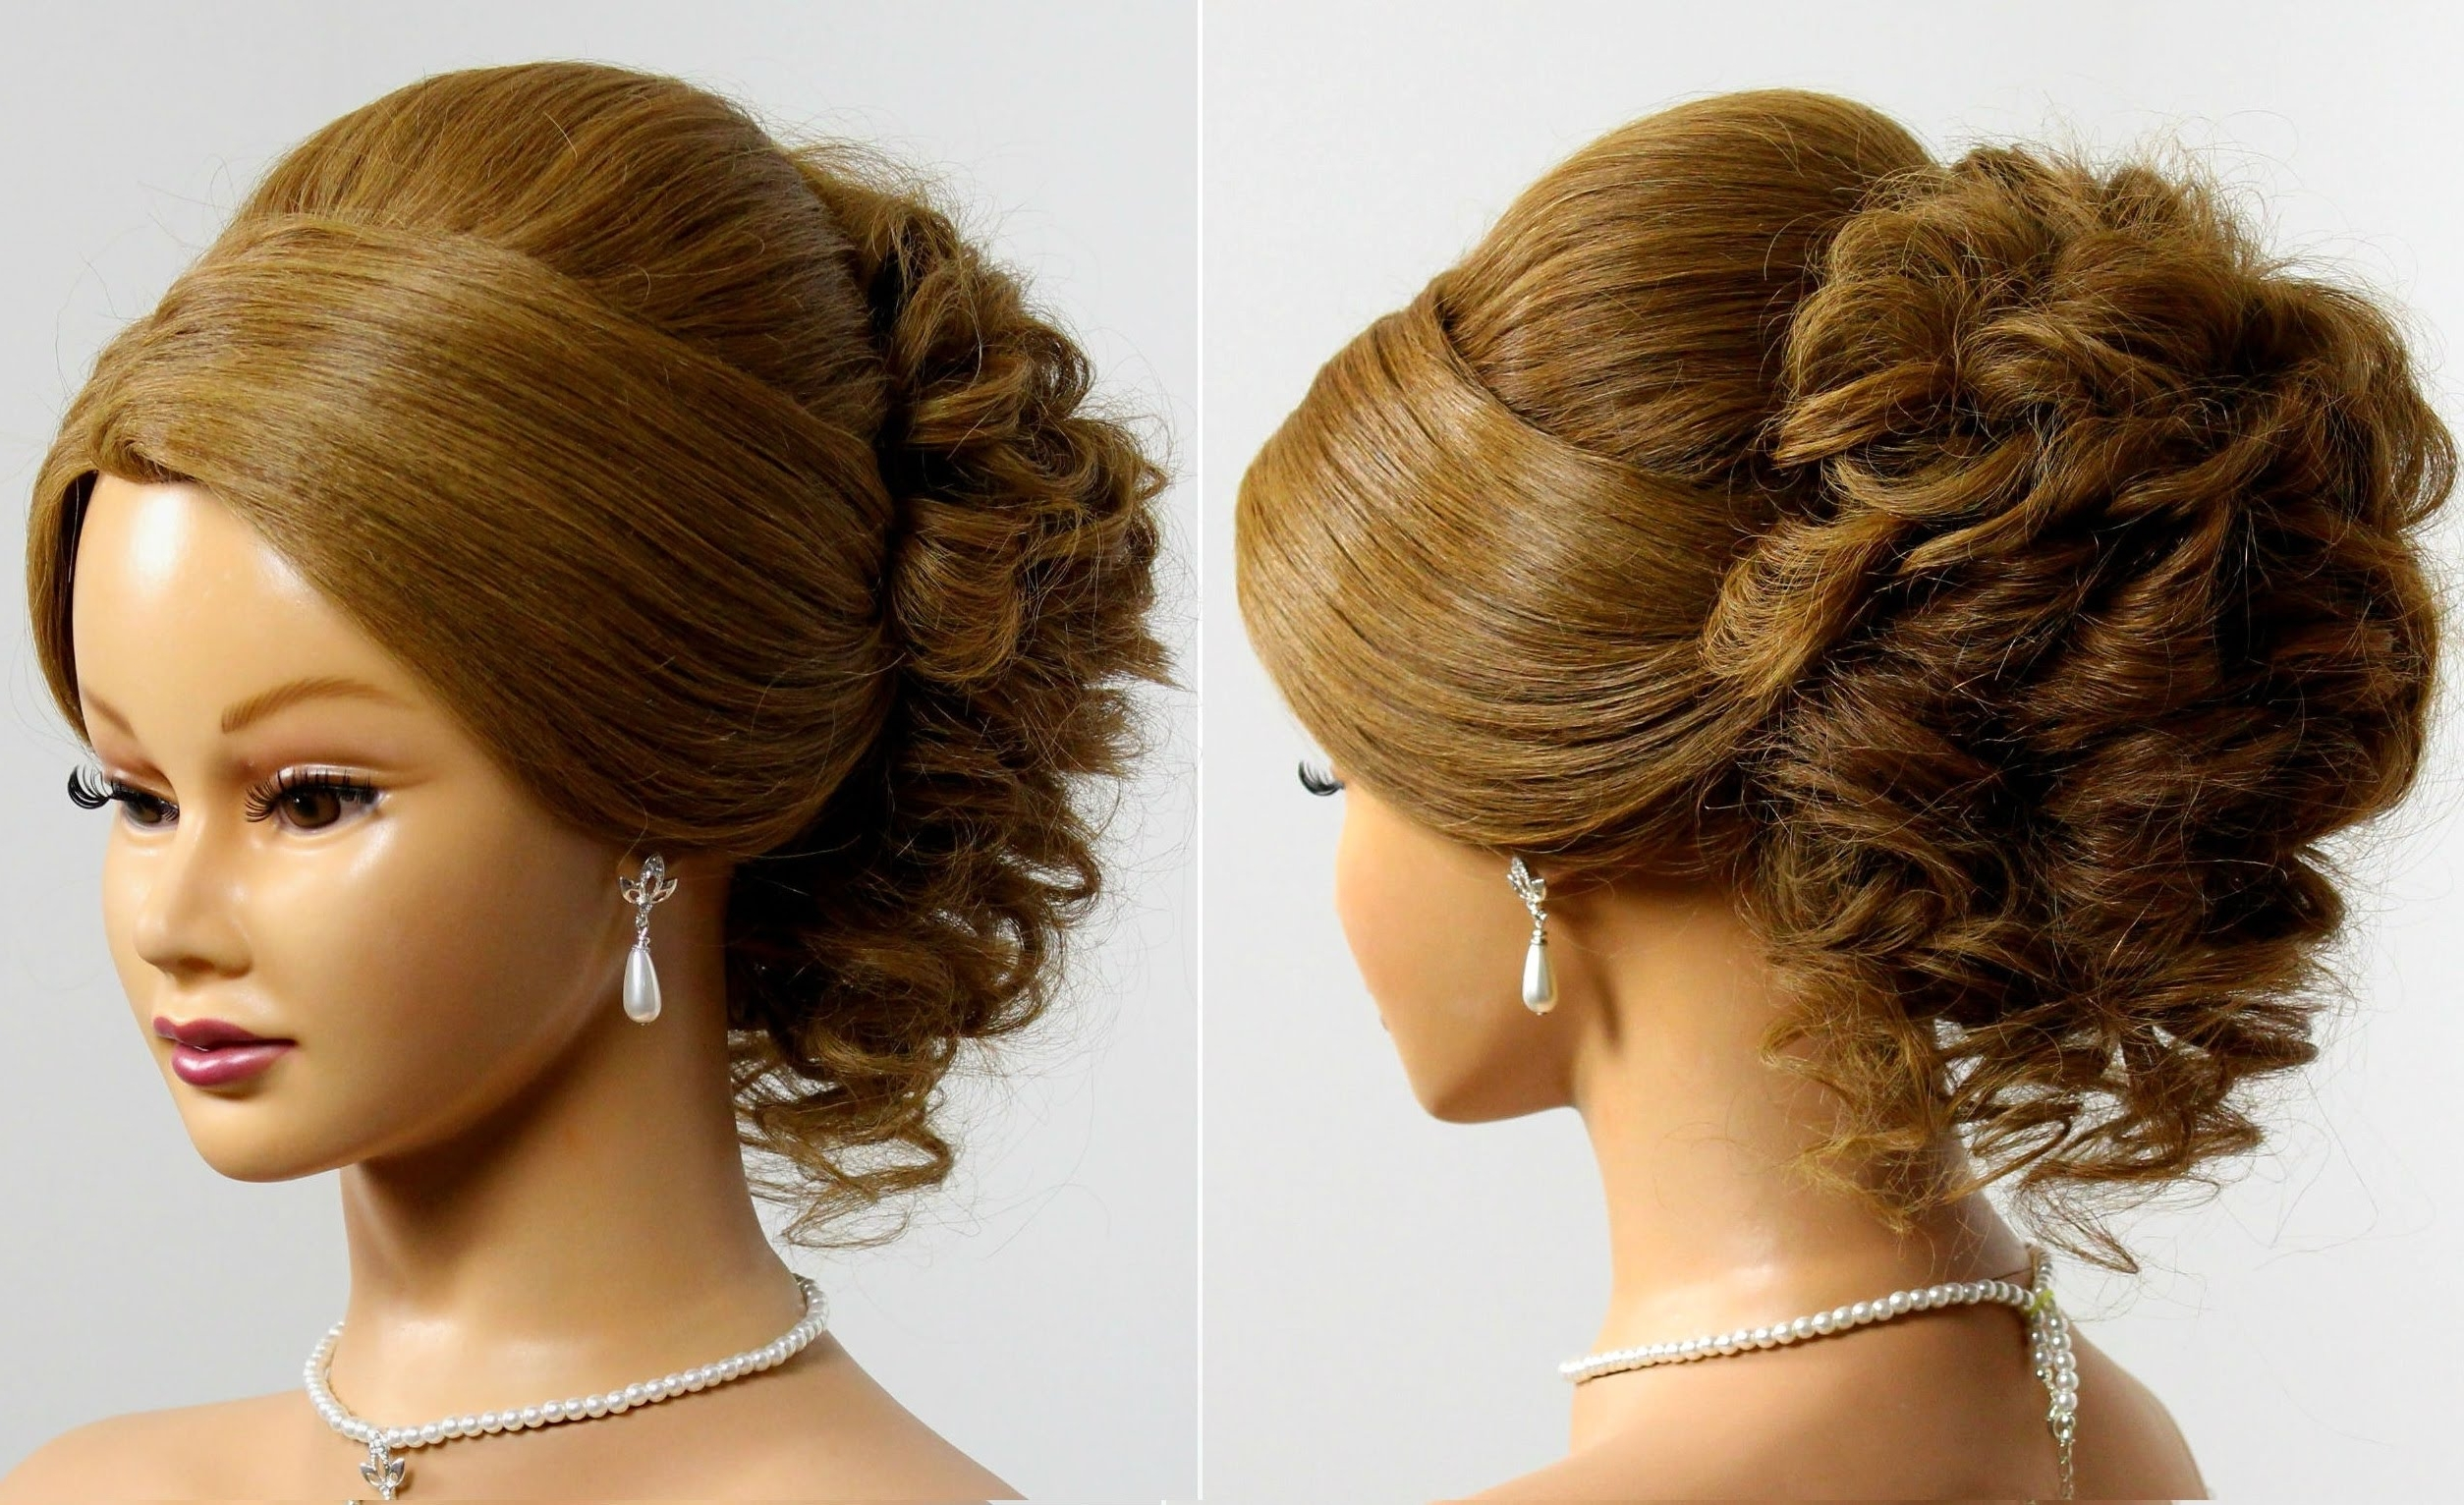 Hairstyles For Medium Hair For Prom – Hairstyle For Women & Man Intended For Formal Updo Hairstyles For Medium Hair (View 9 of 15)